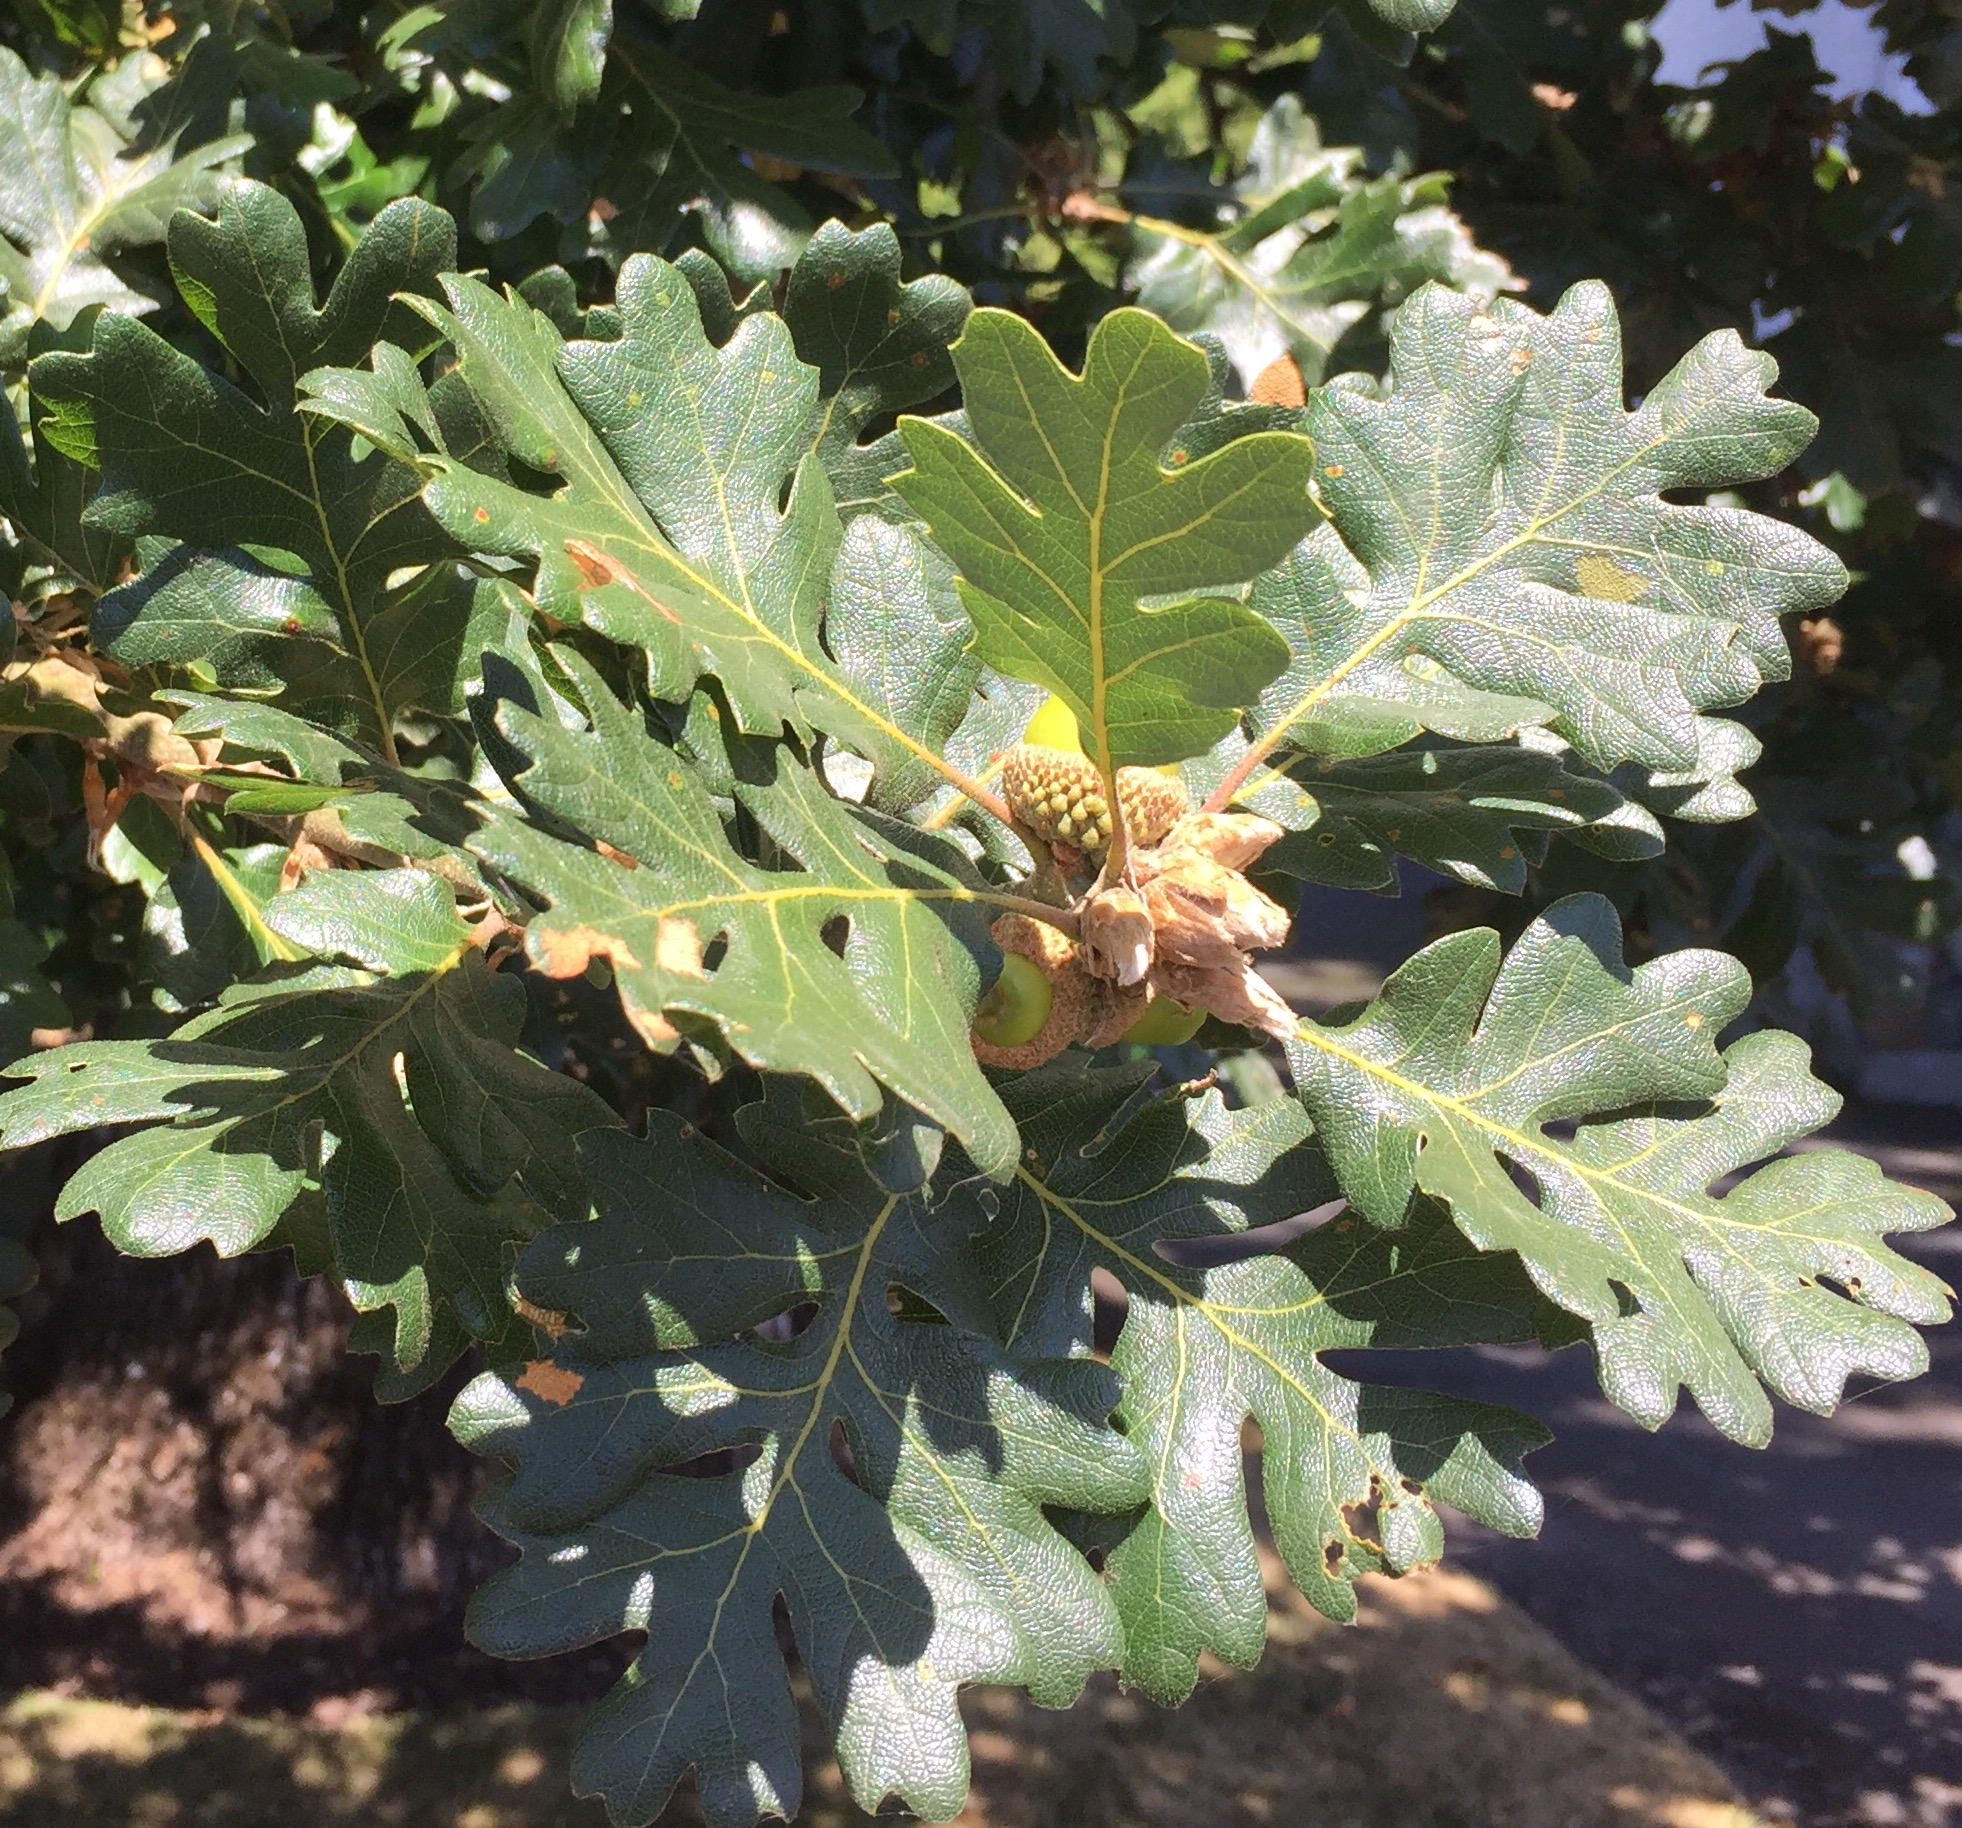 Garry oak leaves and acorns July 2016